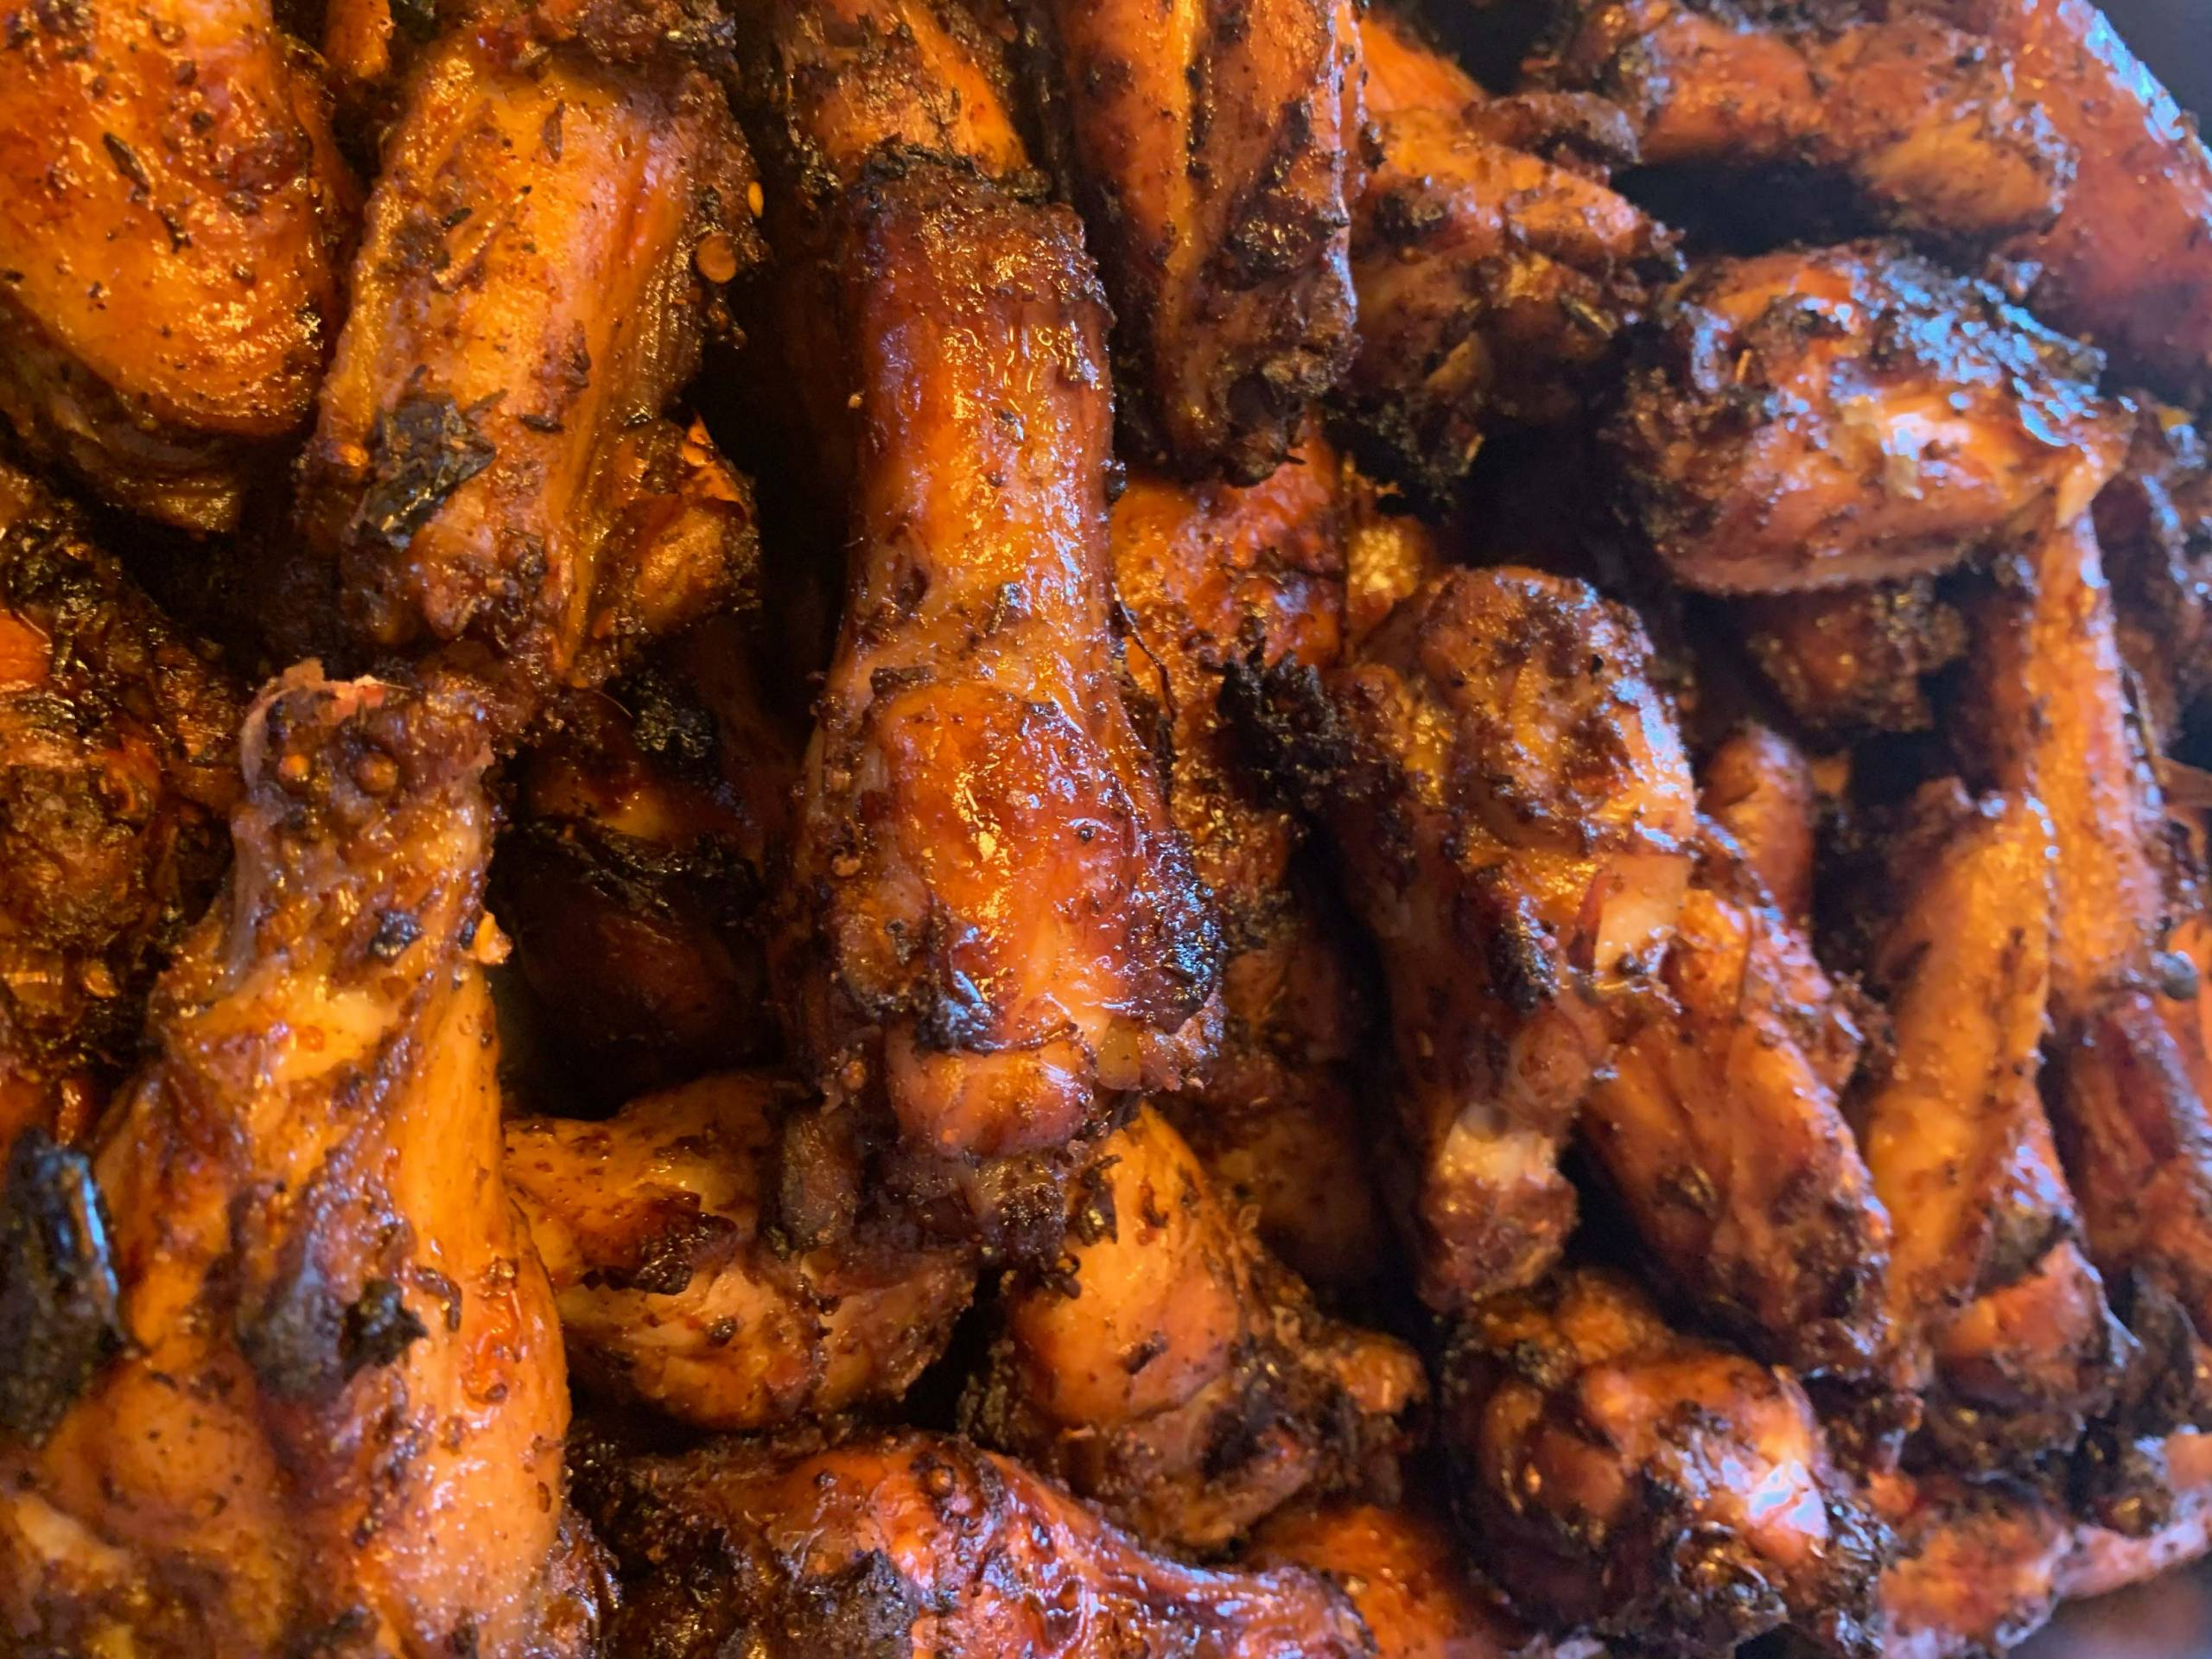 Close-up of a tray of red, spice-stained chicken wings with a hint of charring.